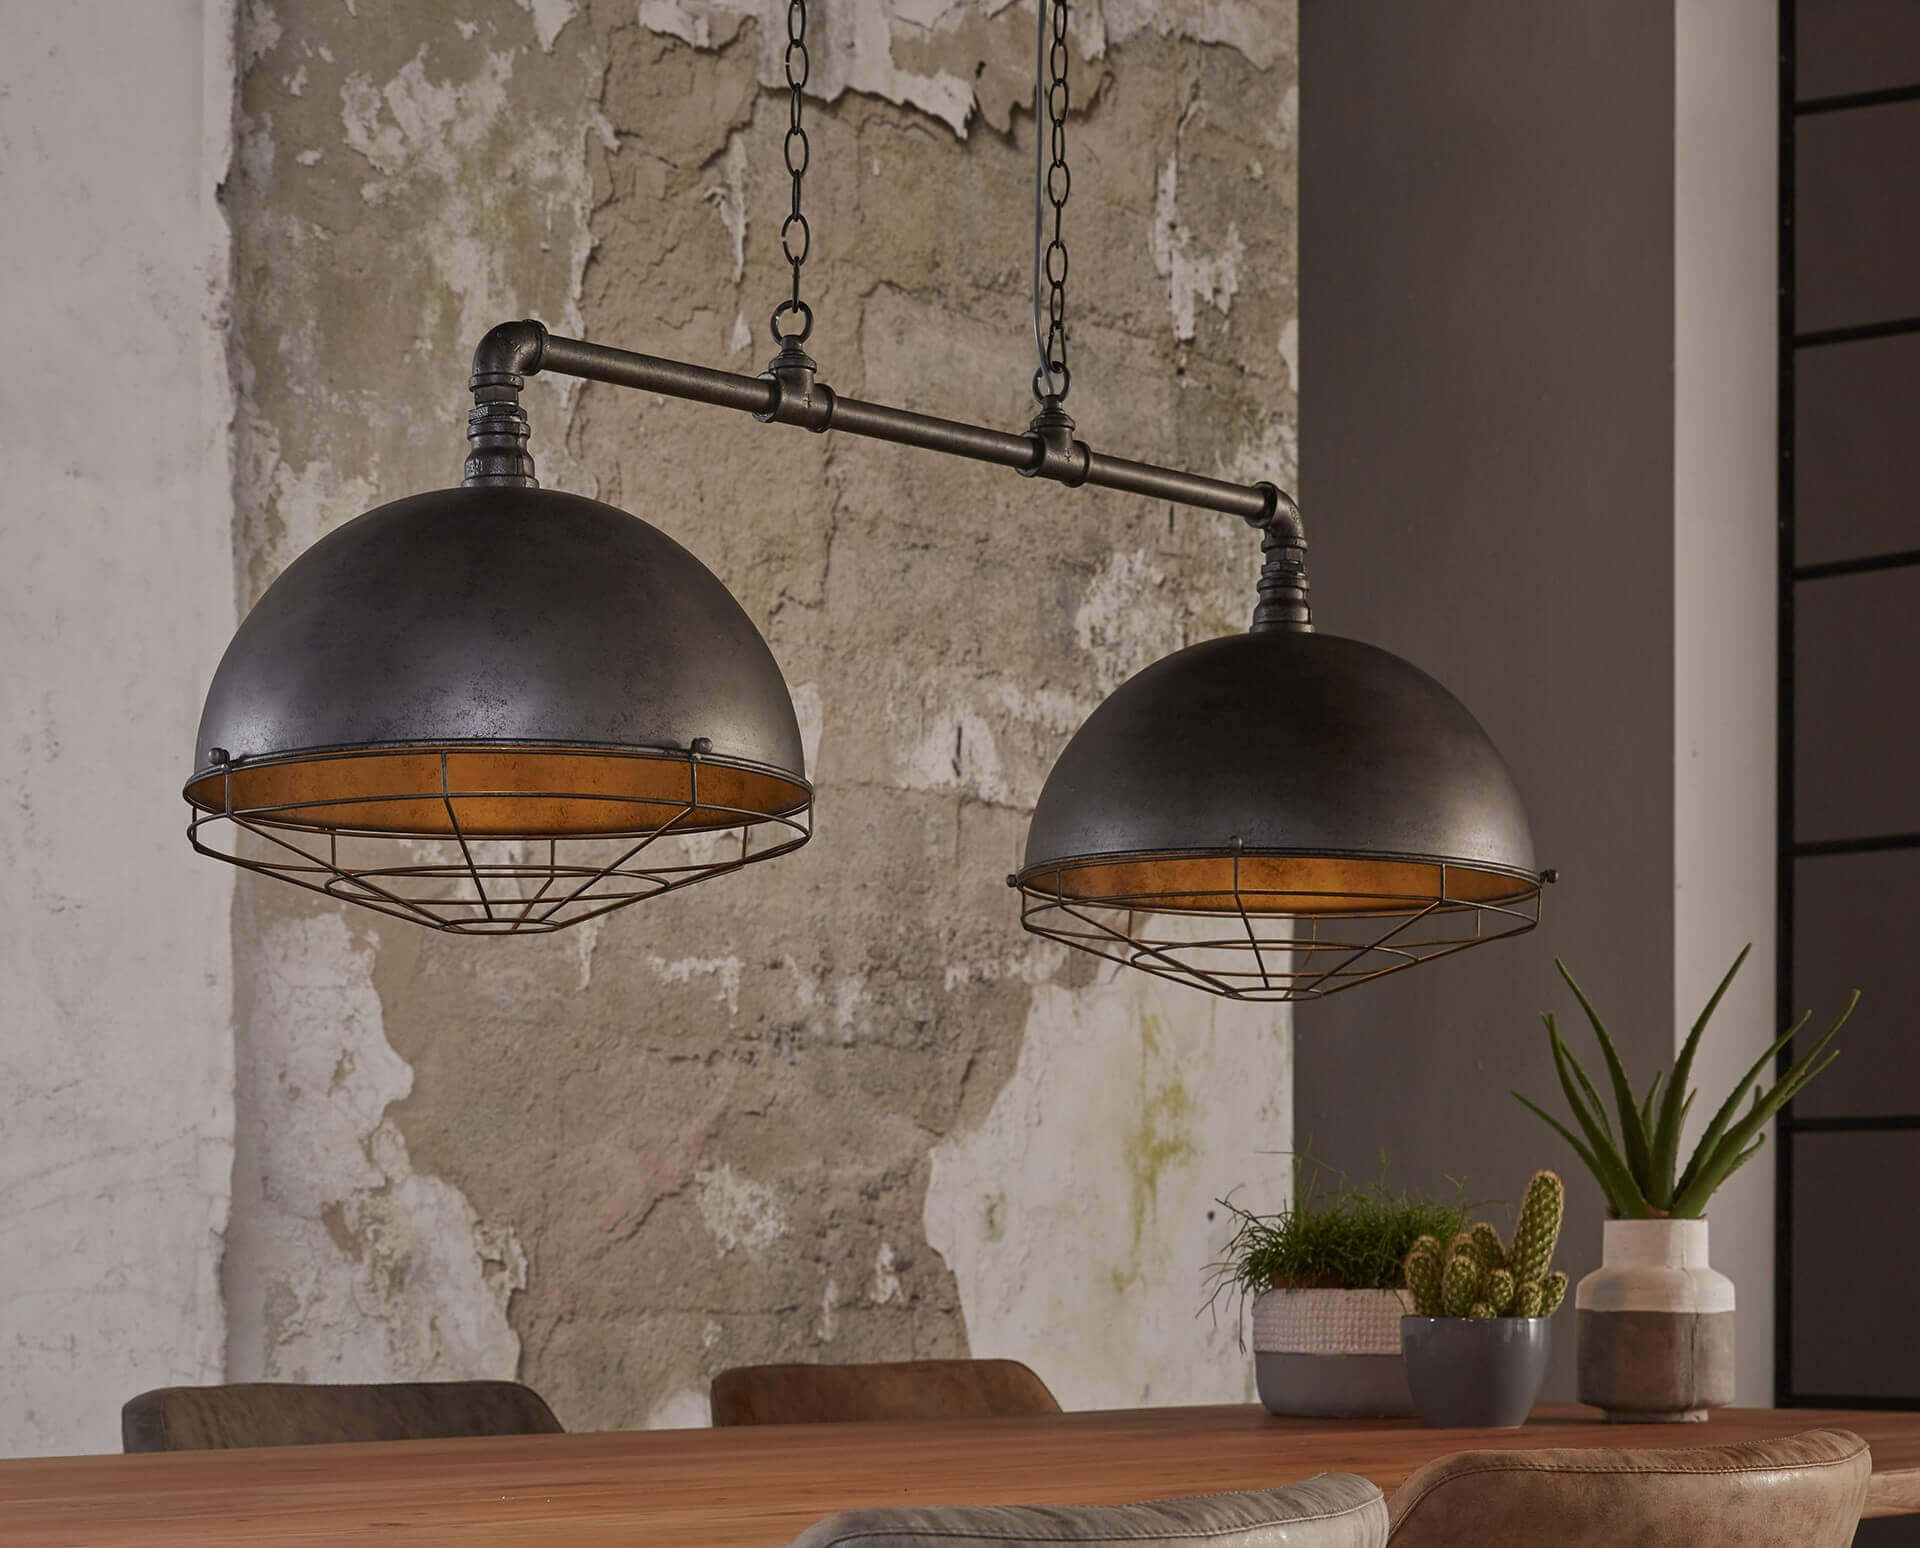 Lampe Suspension Style Industriel Suspension Double De Style Industriel